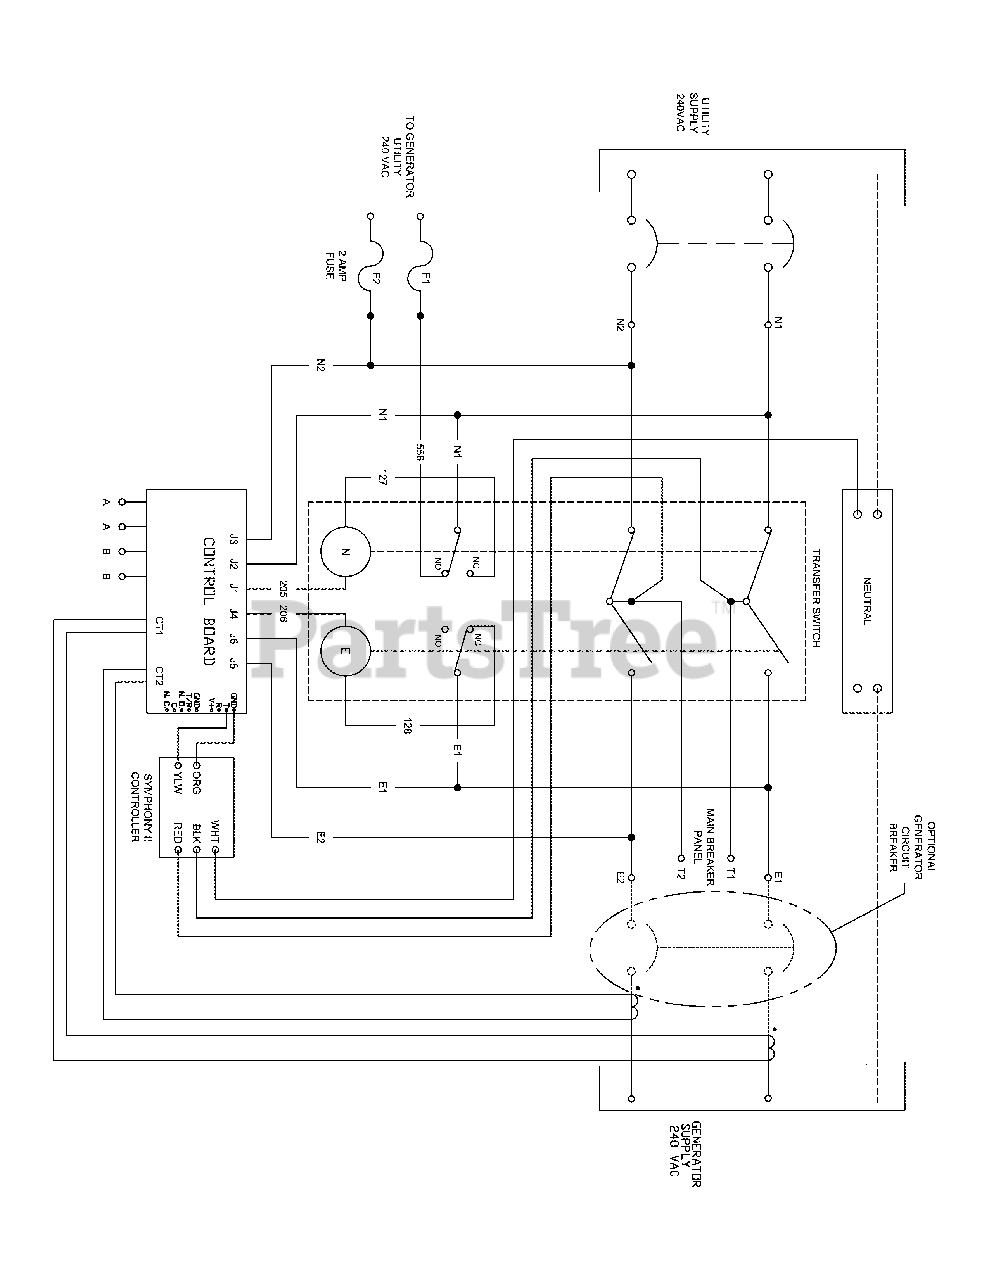 [EQHS_1162]  Briggs & Stratton 071070-02 - Briggs & Stratton 150 Amp Transfer Switch, Symphony  II Wiring Schematic (80011233WS) Parts Lookup with Diagrams | PartsTree | Symphony Transfer Switch Wiring Diagram 2 |  | PartsTree